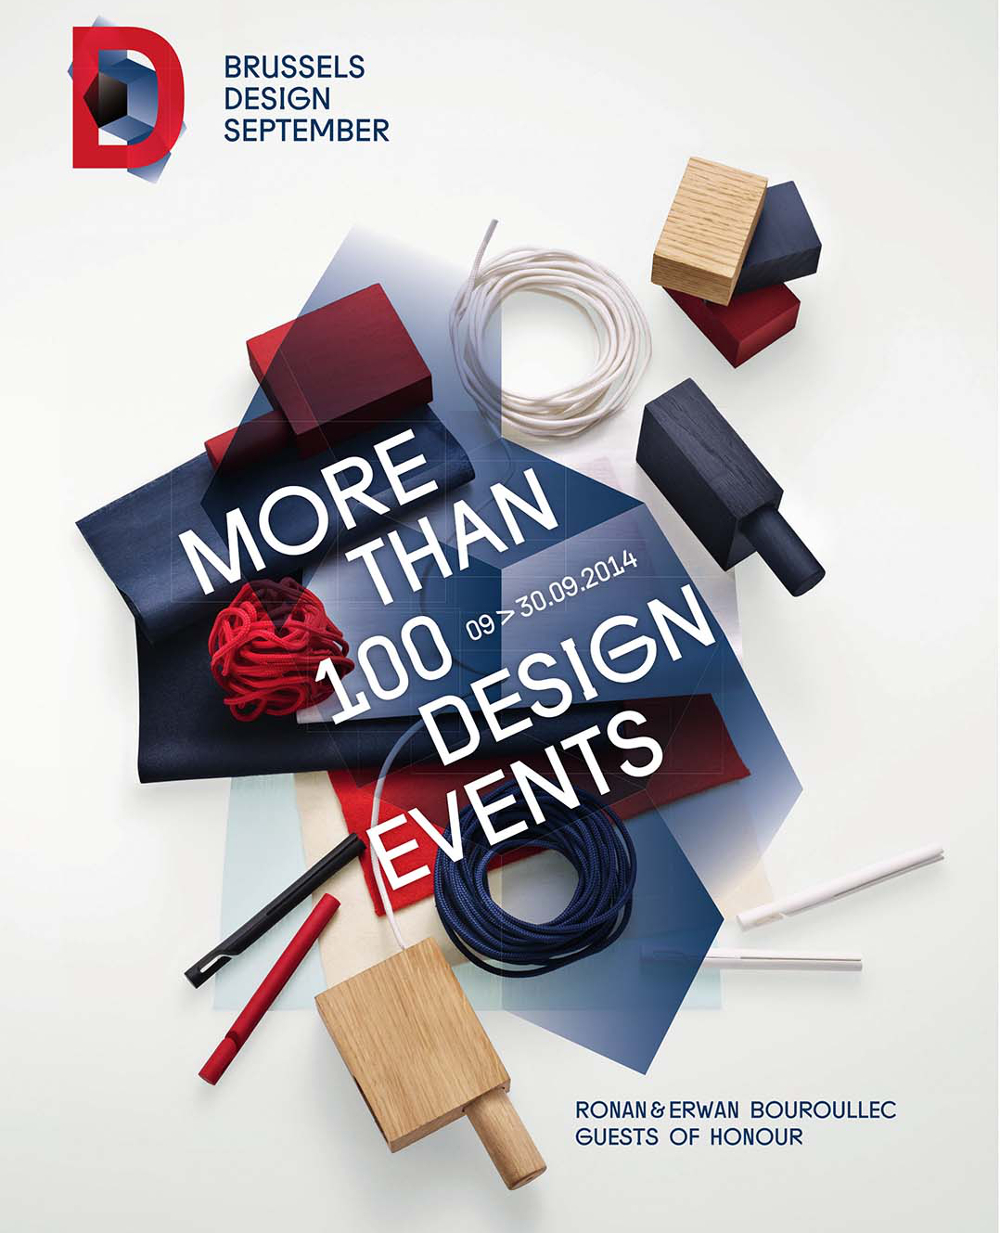 Brussels Design September 2015 en approche